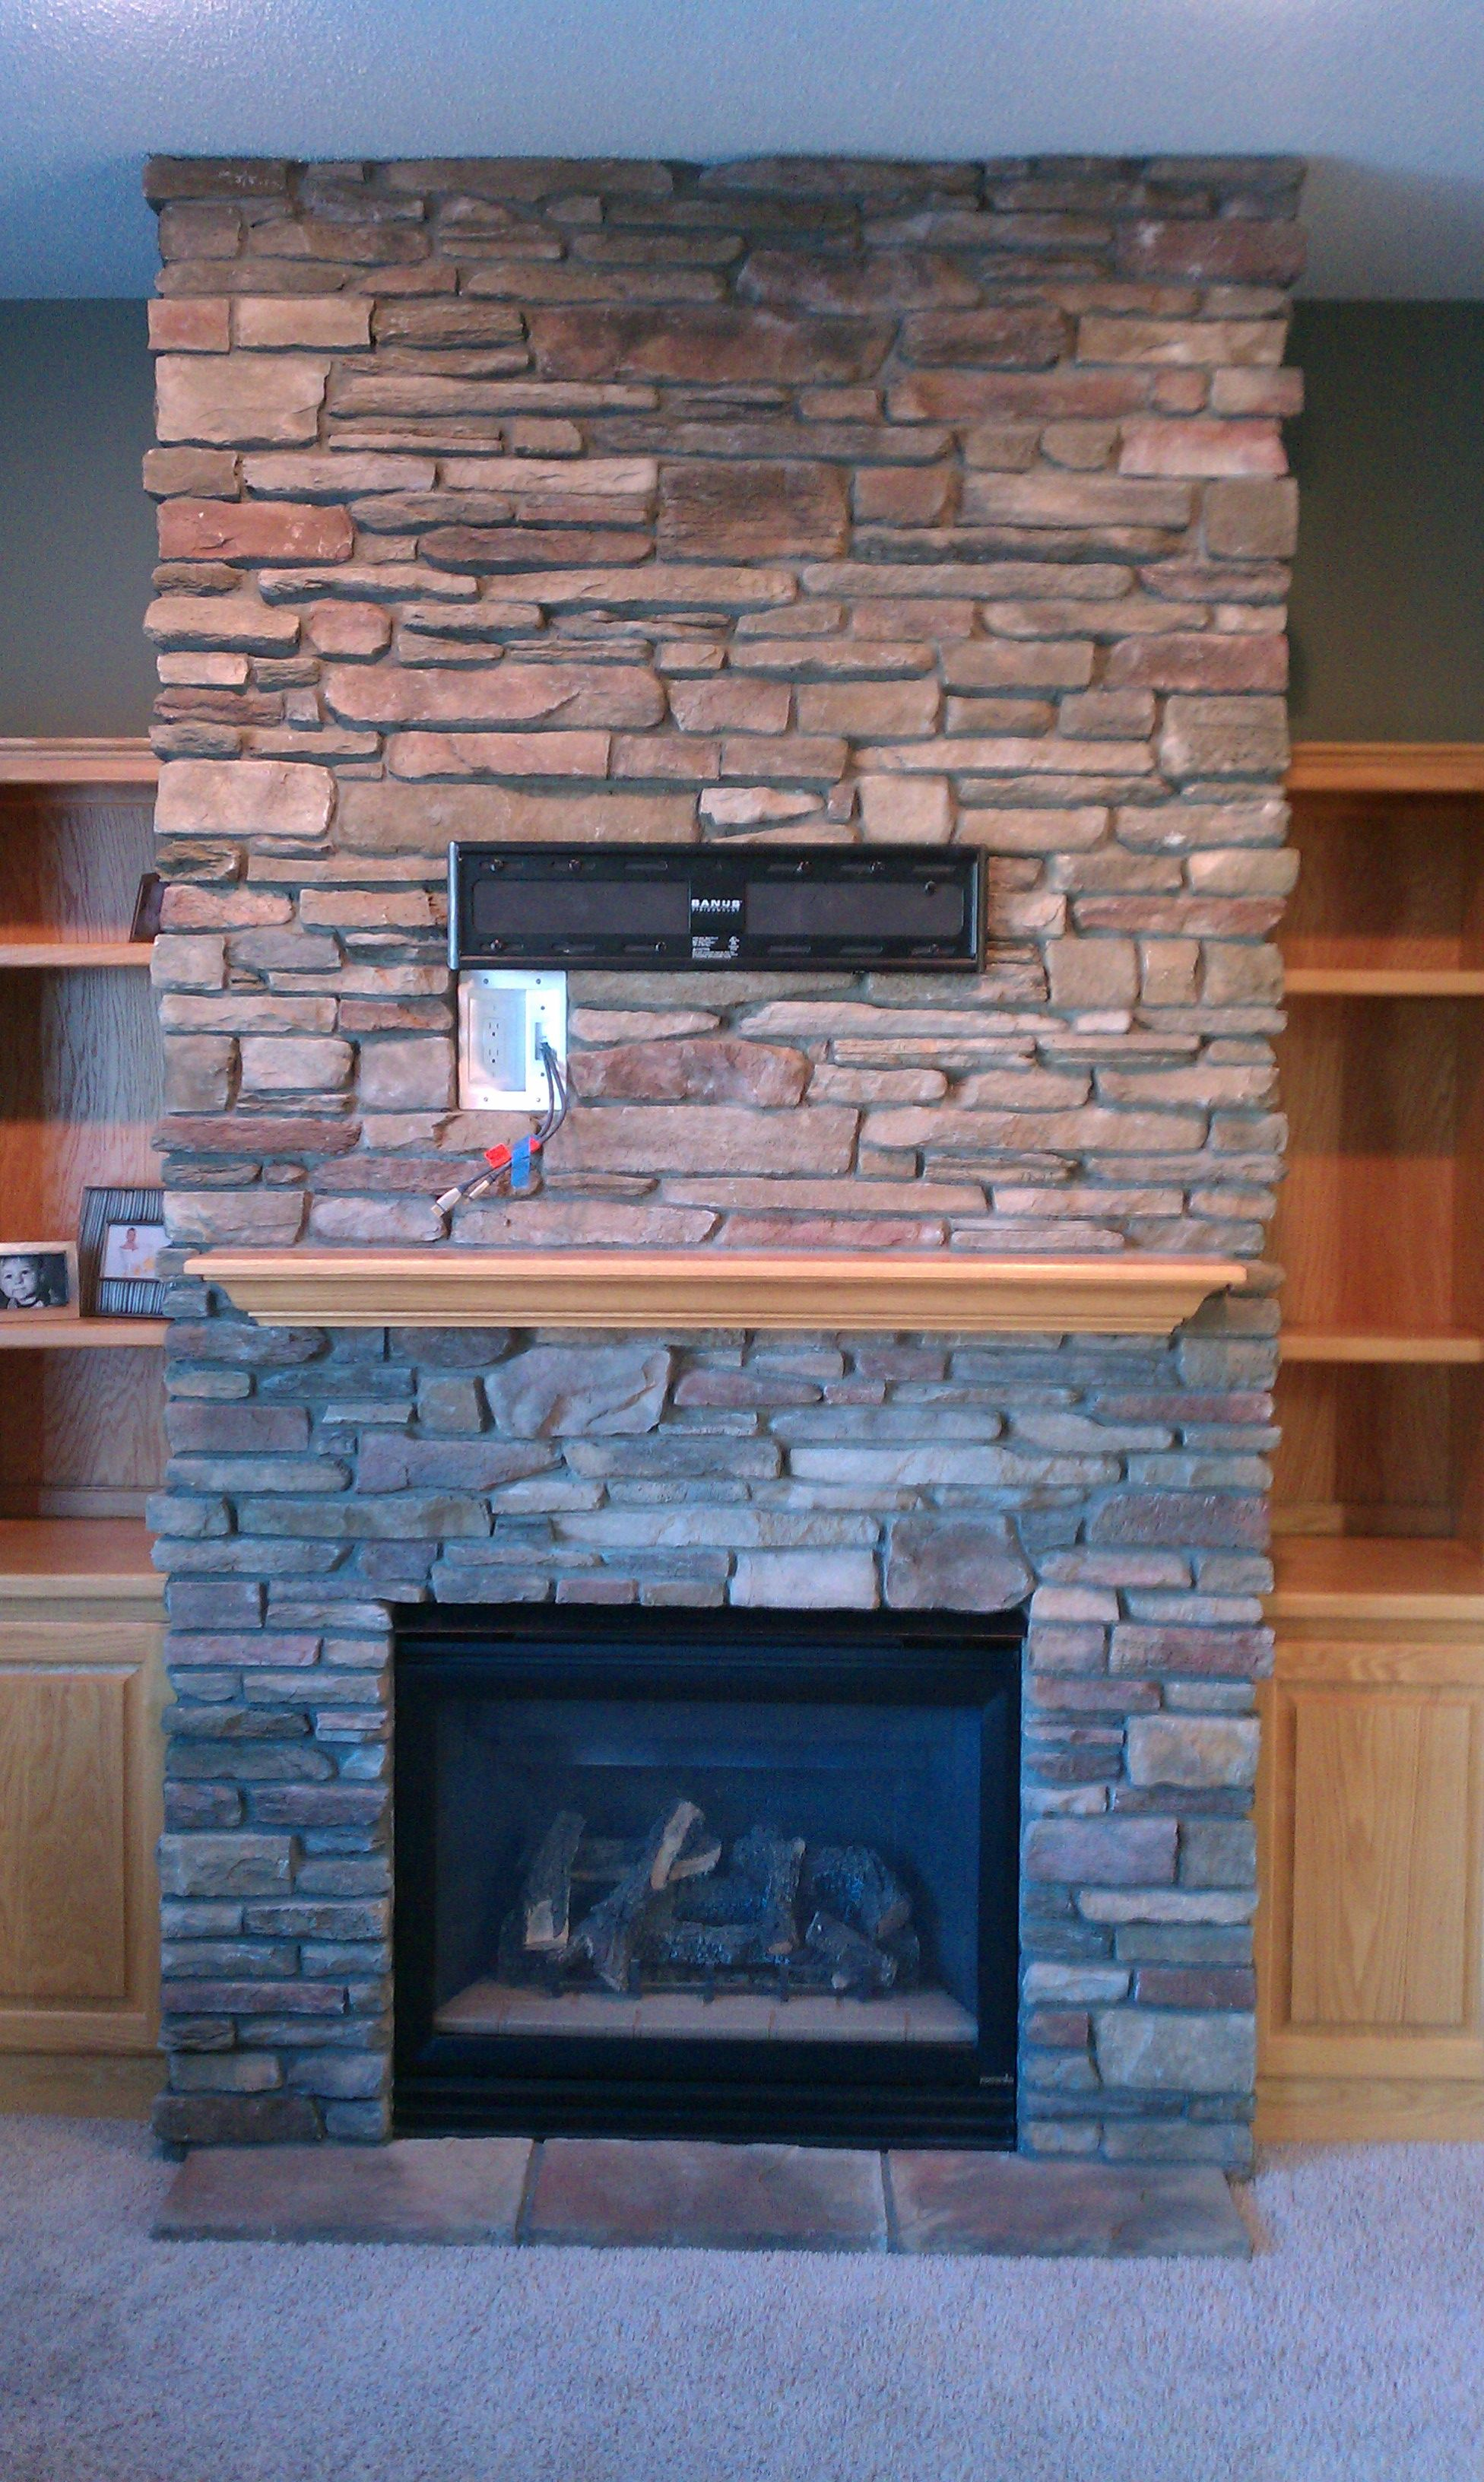 ventless fireplaces design safety fireplace natural for logs decorating gas living inspiring interesting interior free room